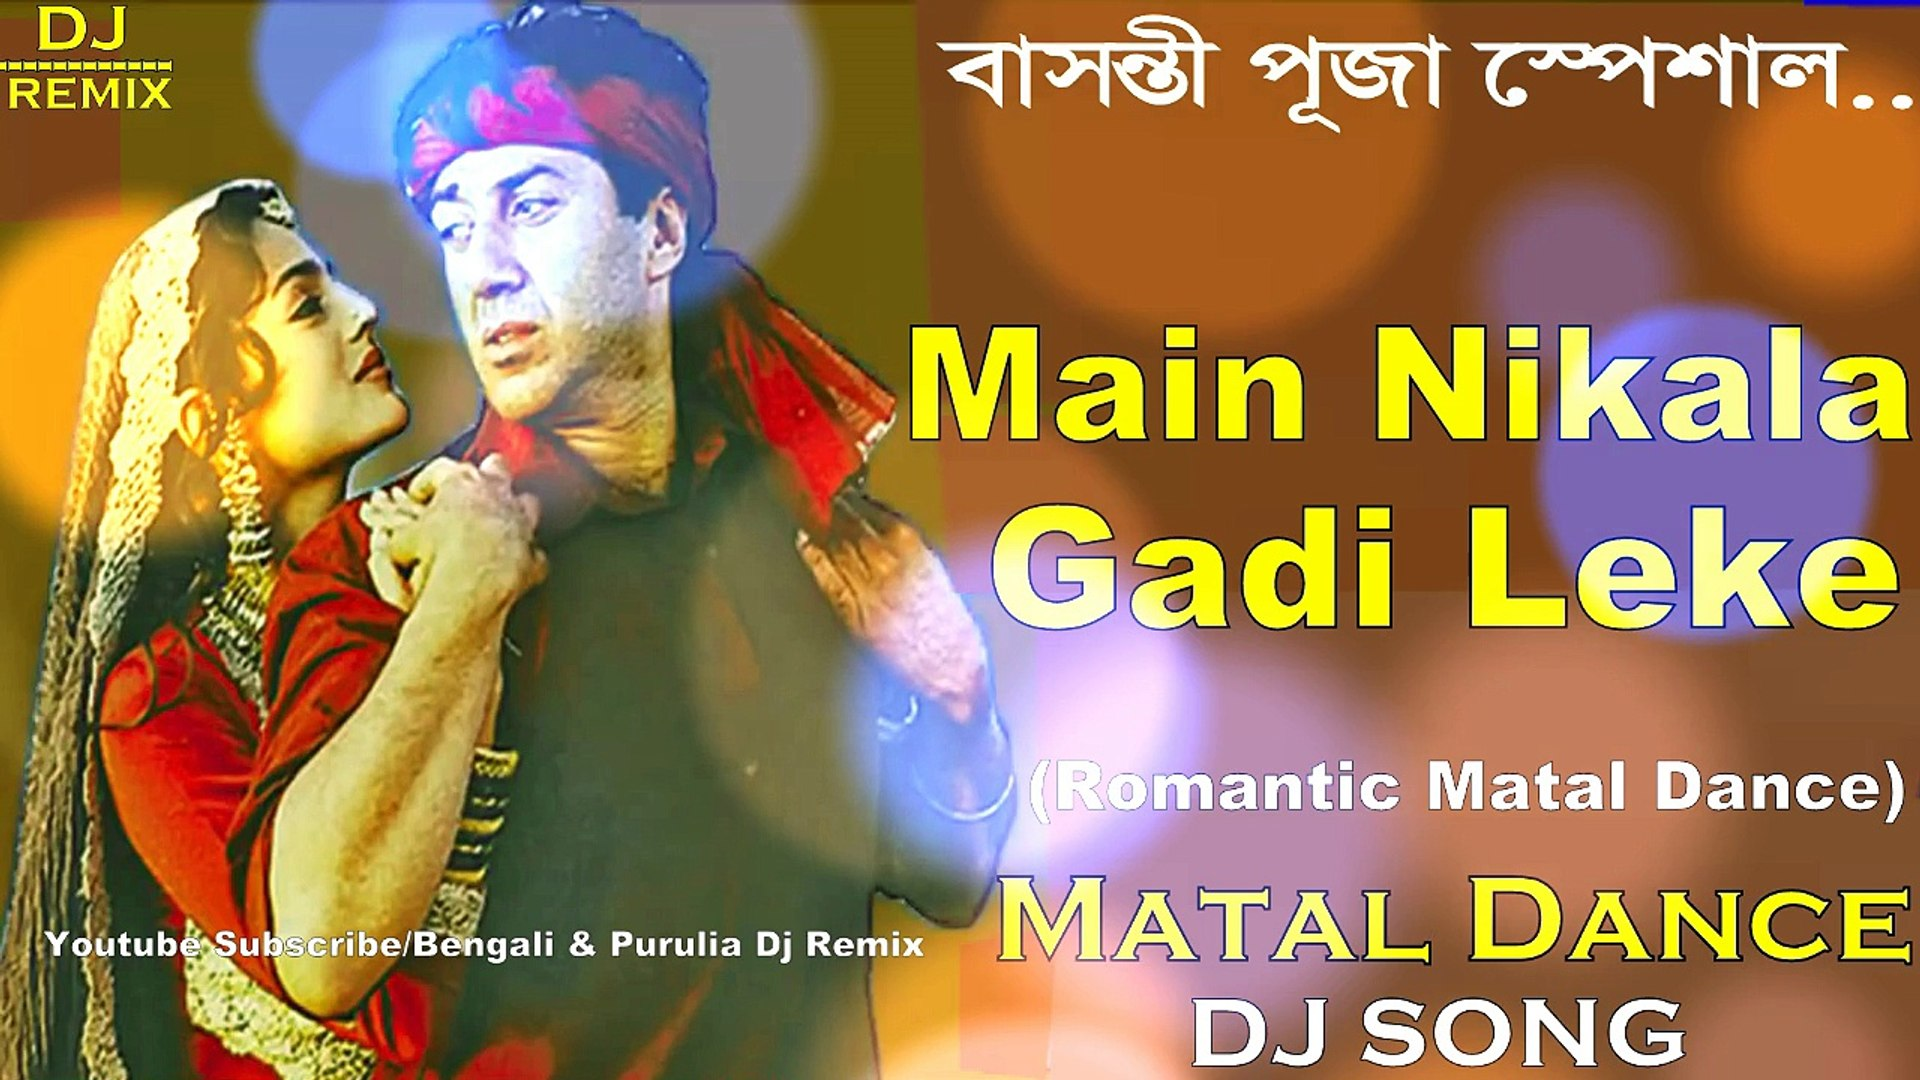 Main Nikala Gadi Leke (Romantic Matal Dance Mix) Dj Song | 2018 Matal Dance  Mix